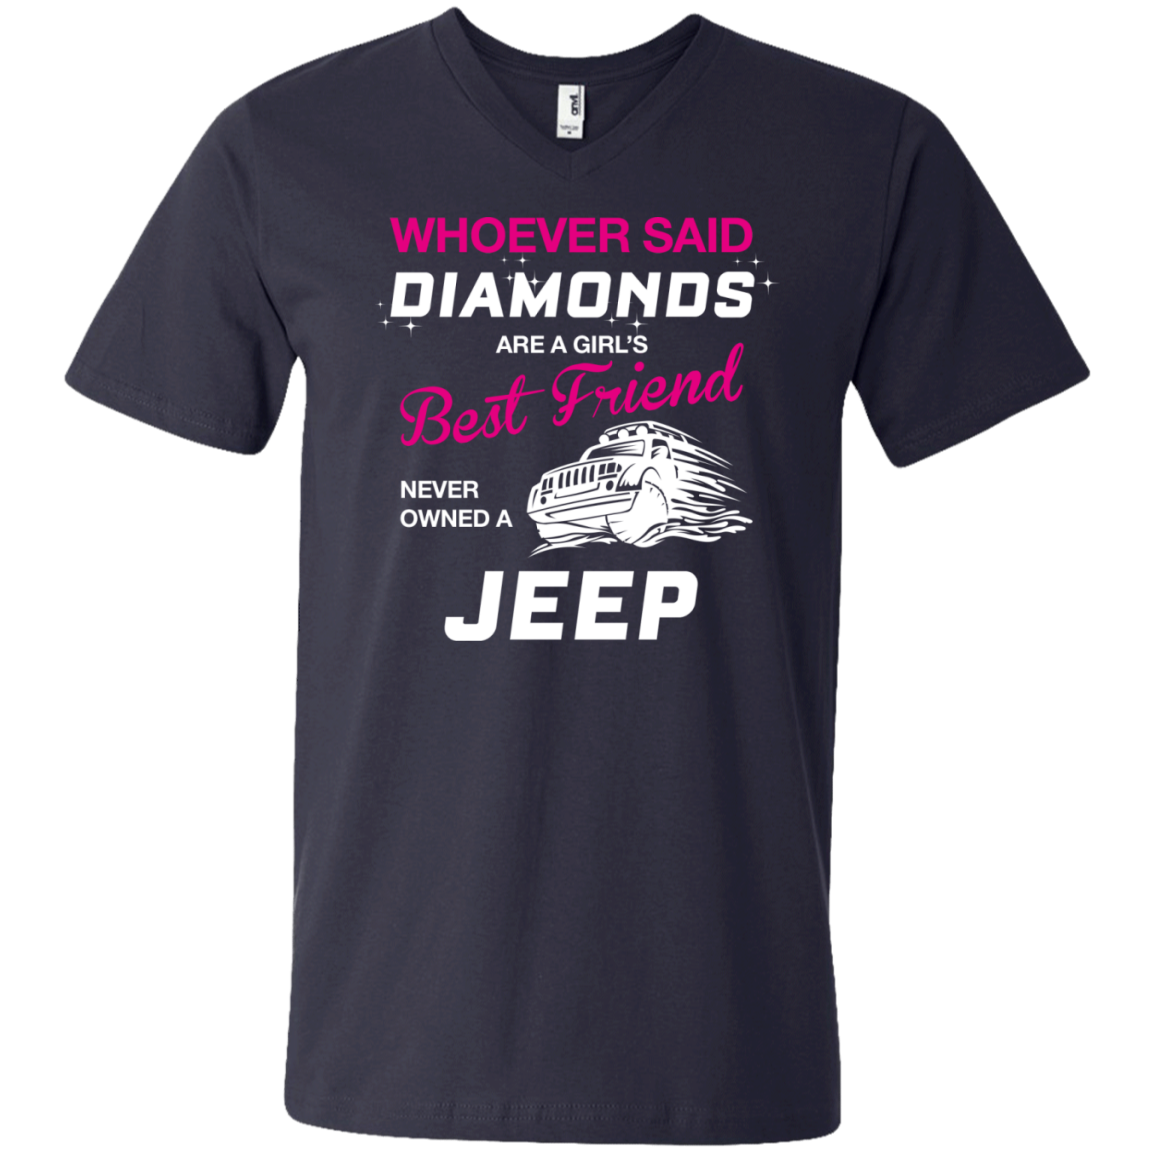 Whoever said DIAMONDS are a girl's Best Friend never owned a JEEP - TheSunCat.com - 8